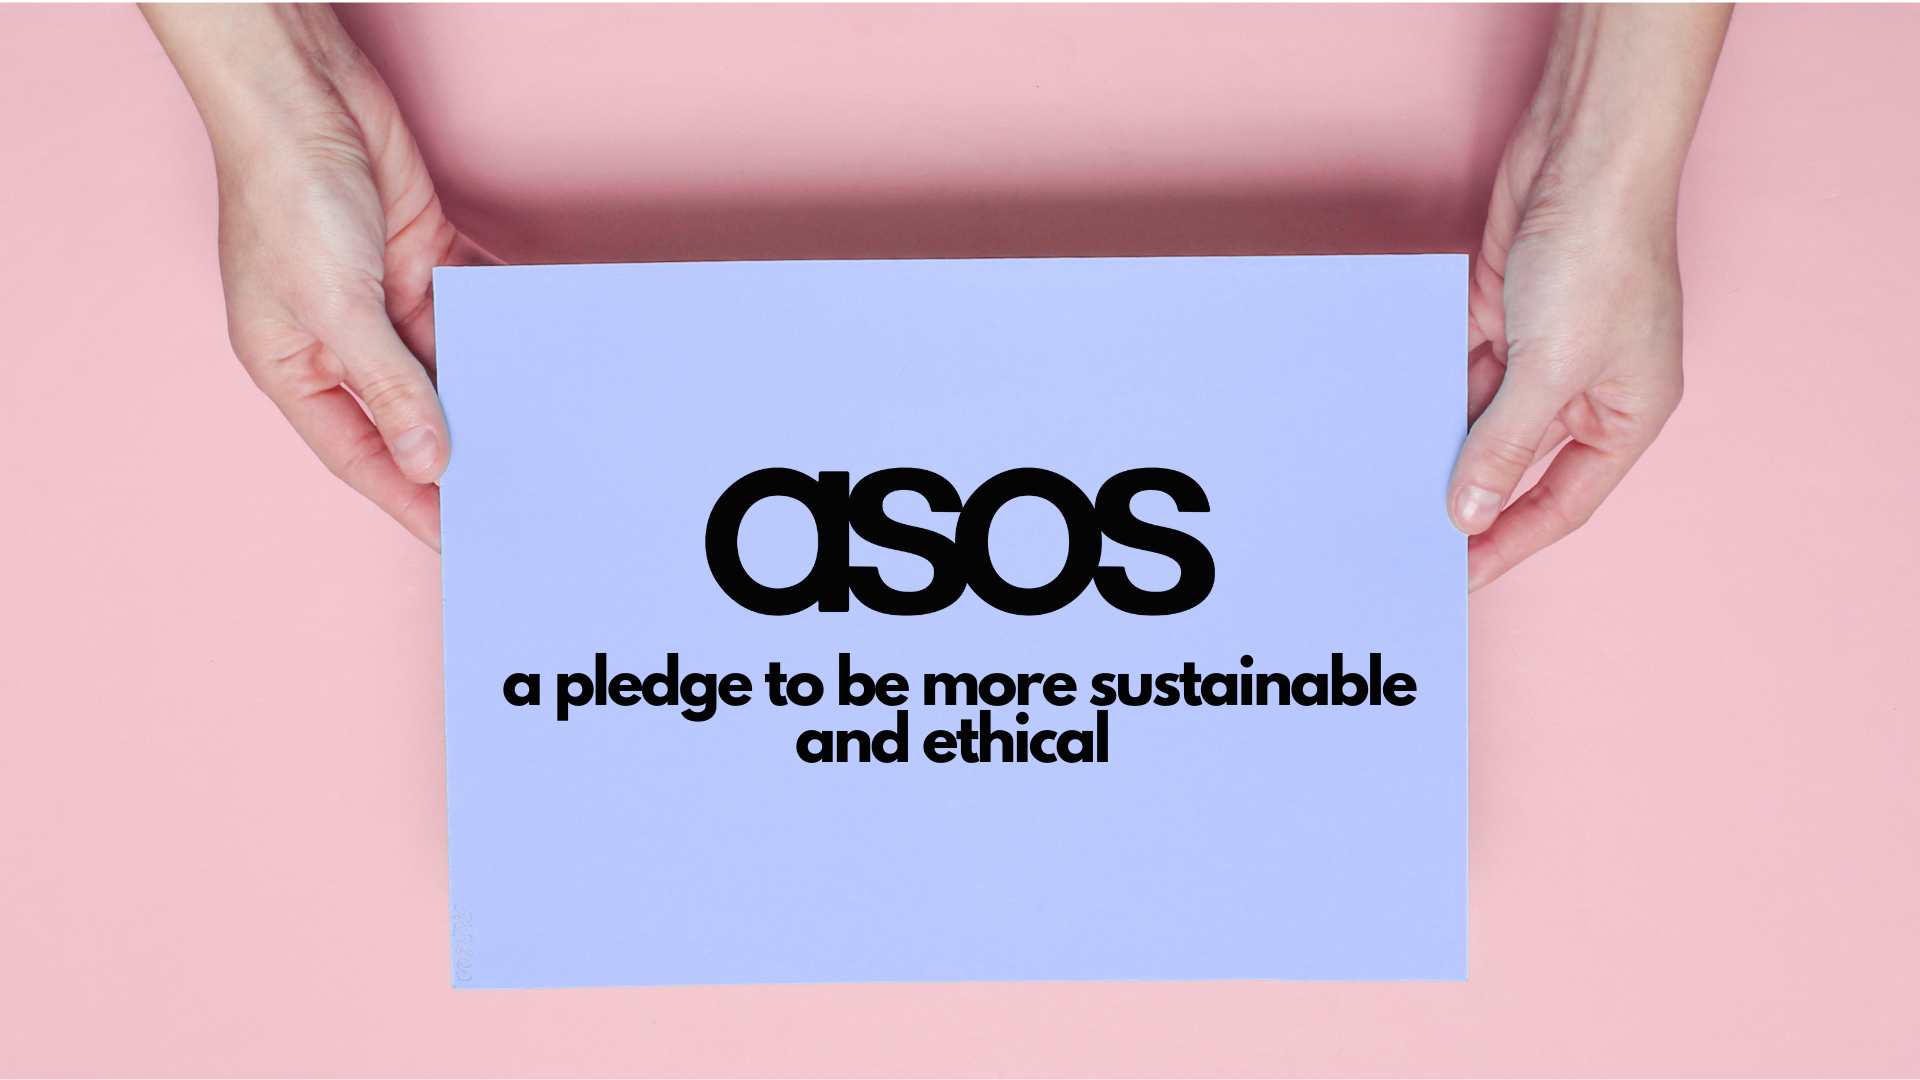 Ethical brands in fast fashion like ASOS